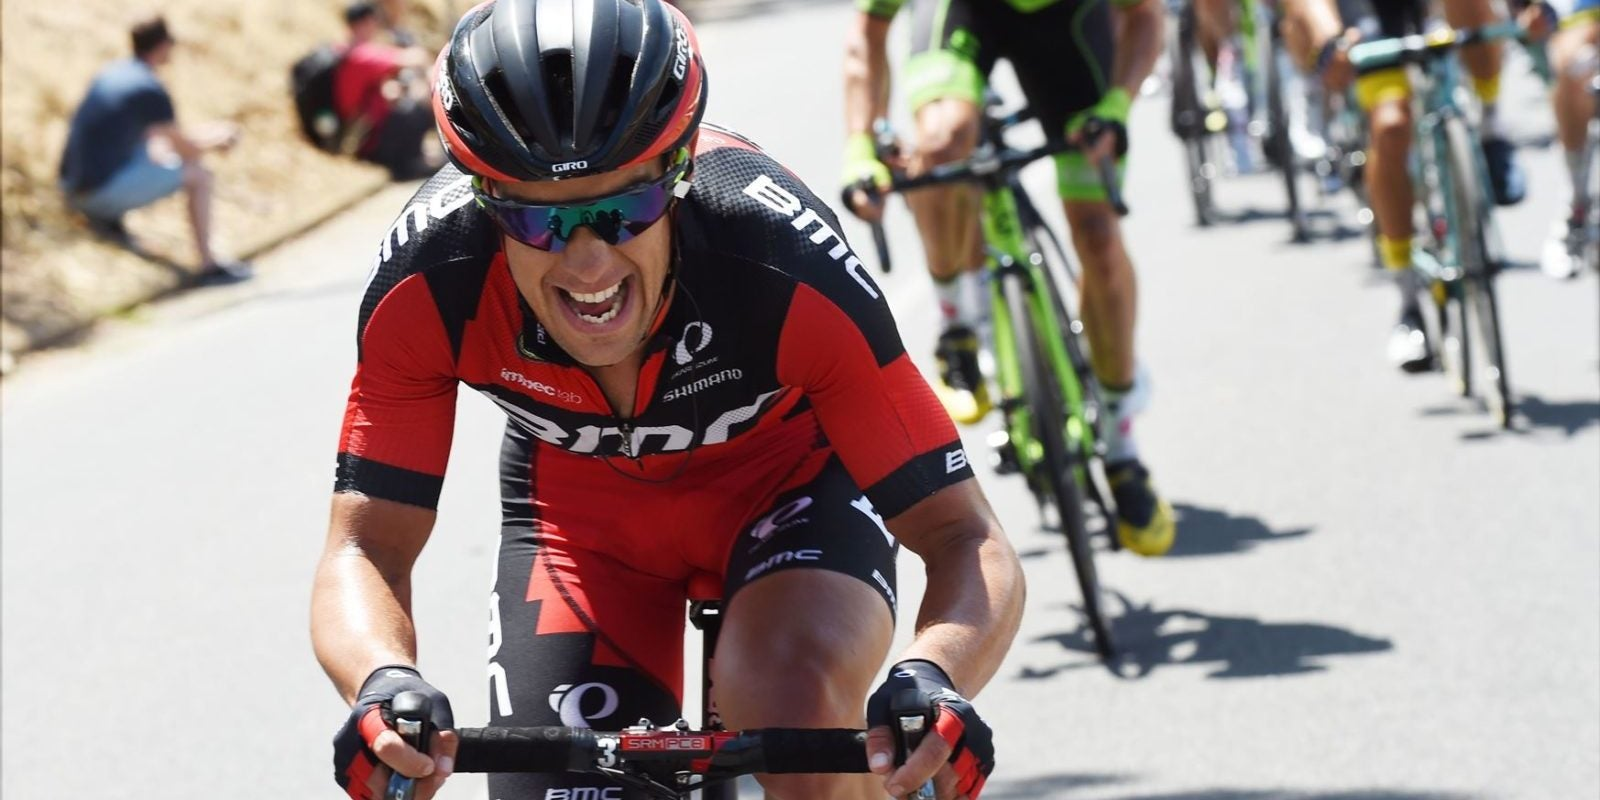 Porte to dauphine tejay to suisse peloton magazine for Richie porte and bmc